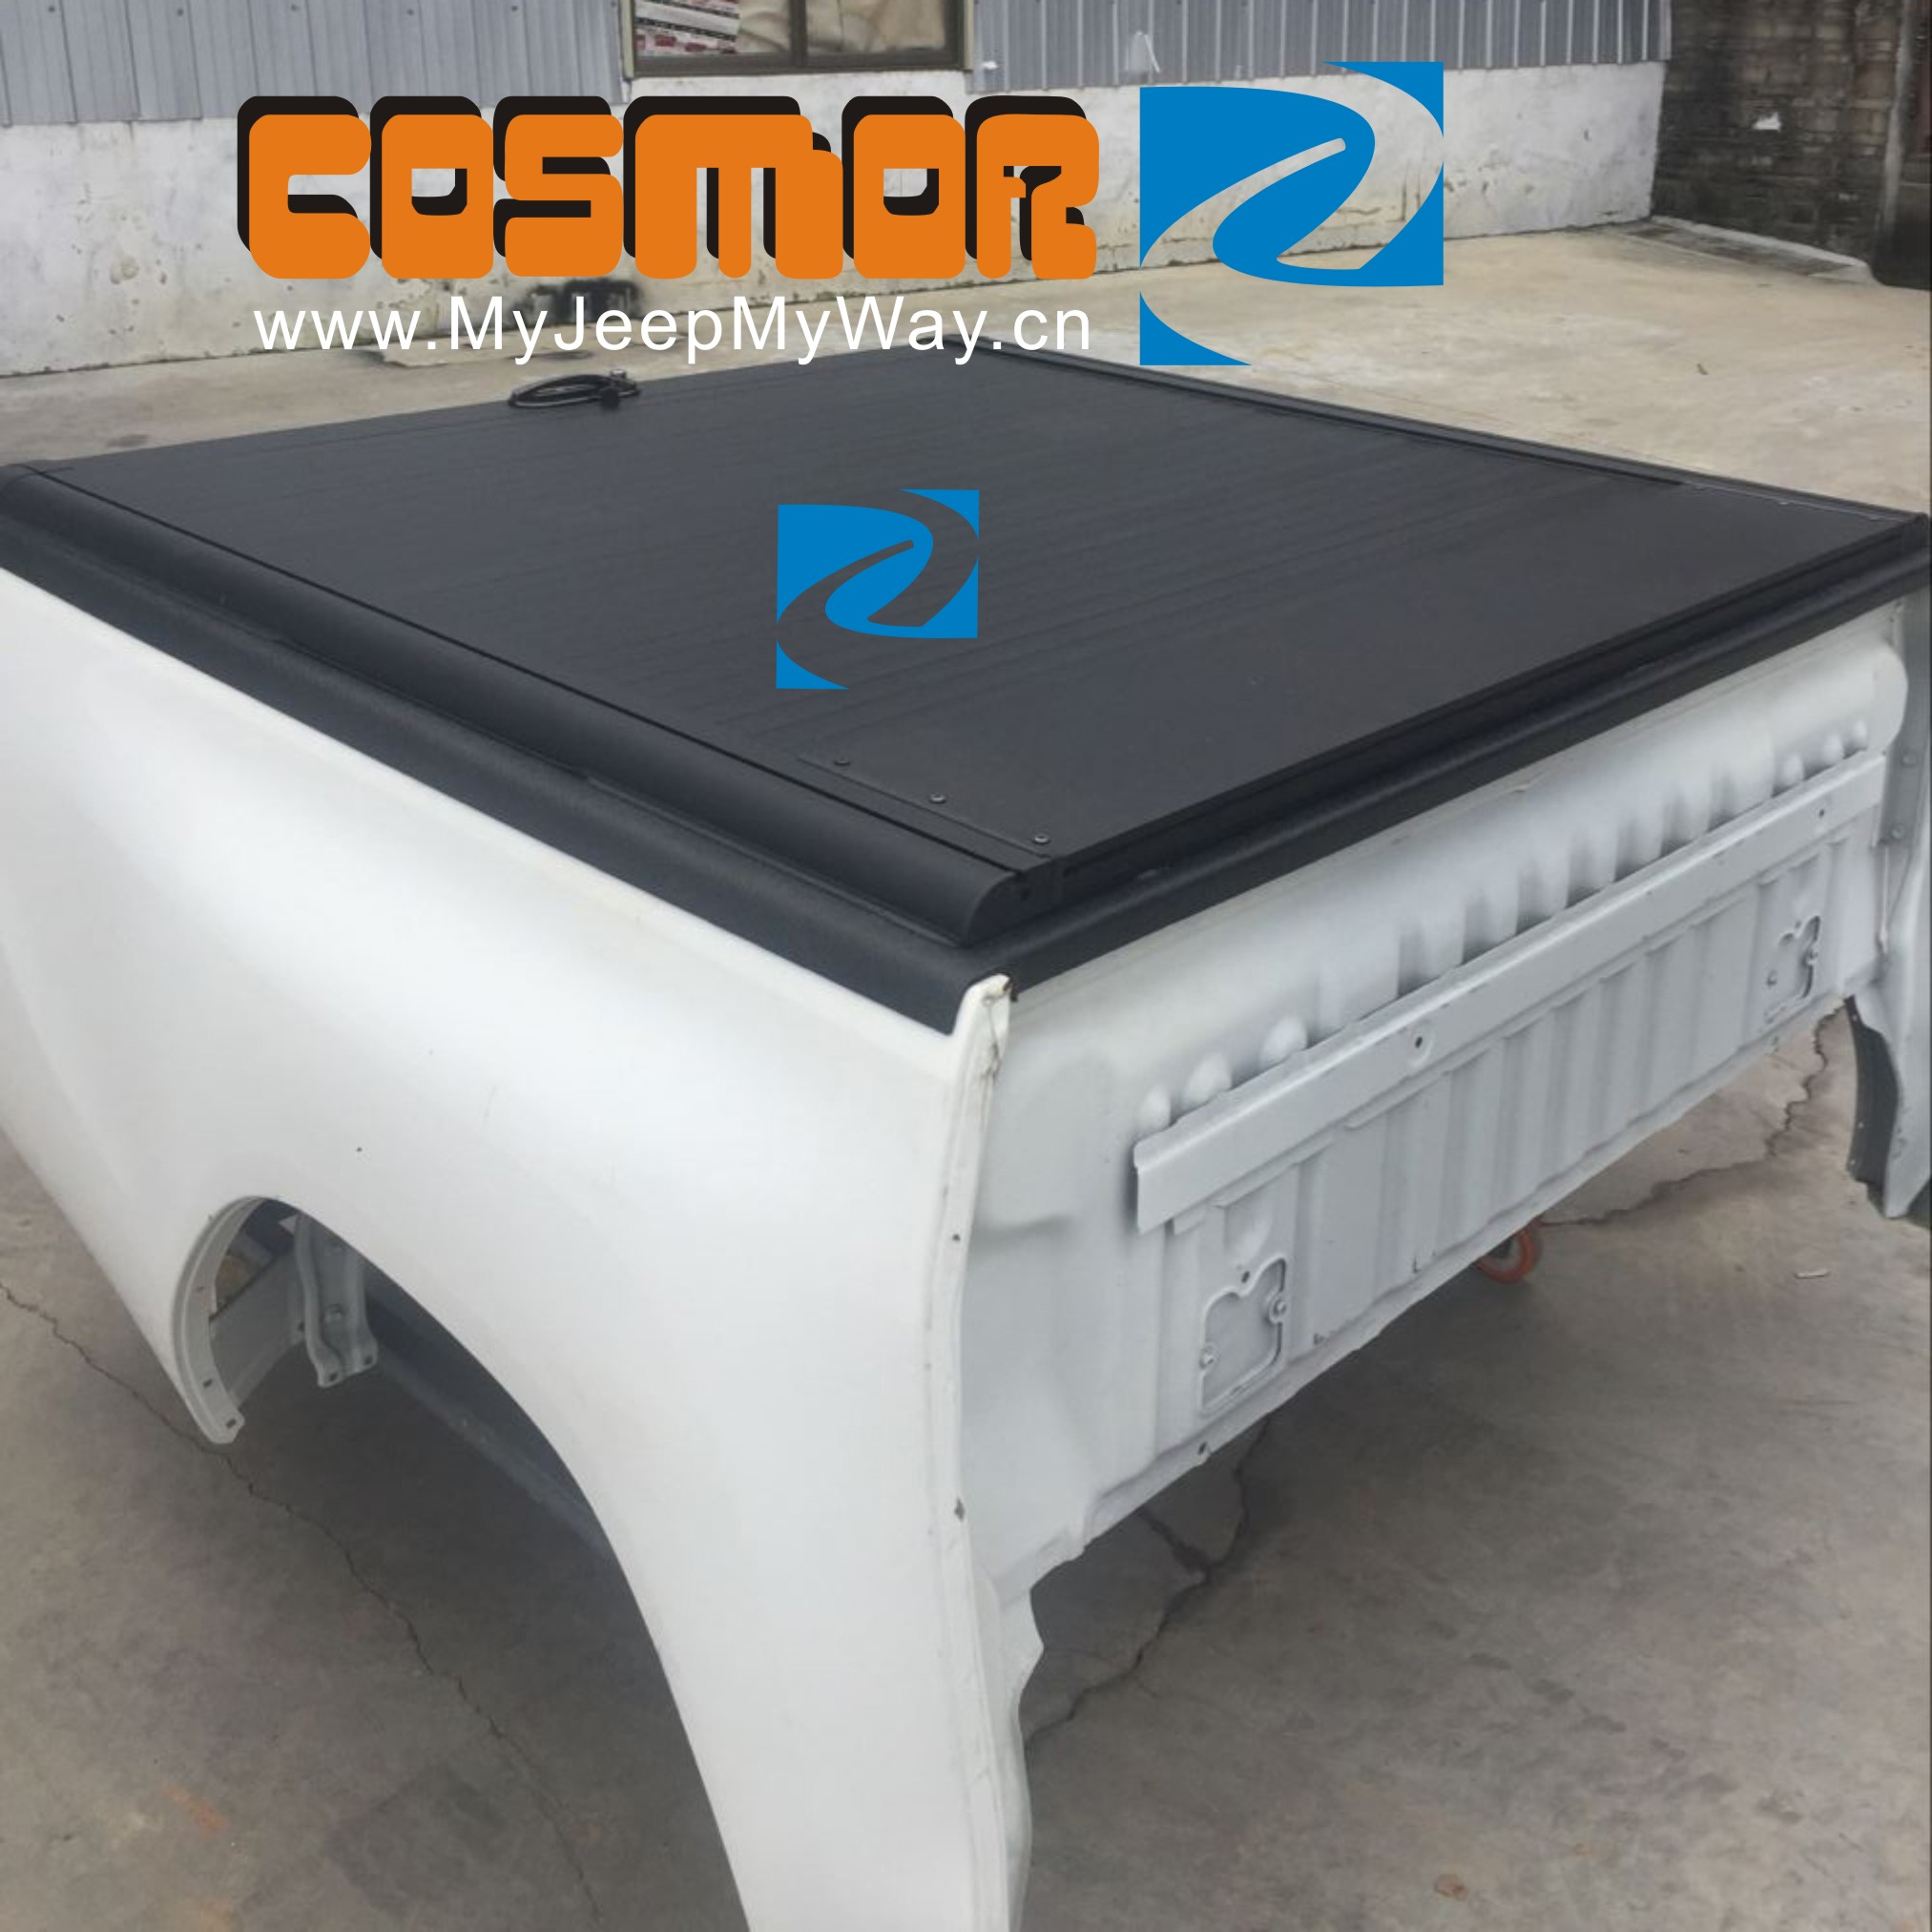 Toyota Tundra Bed Cover >> Aluminum Roll Tonneau Cover For Toyota Tundra Buy Aluminum Shutter For Toyota Tundra 2007 2013 Truck Cargo Bed Cover For Toyota Tundra Bed Truck